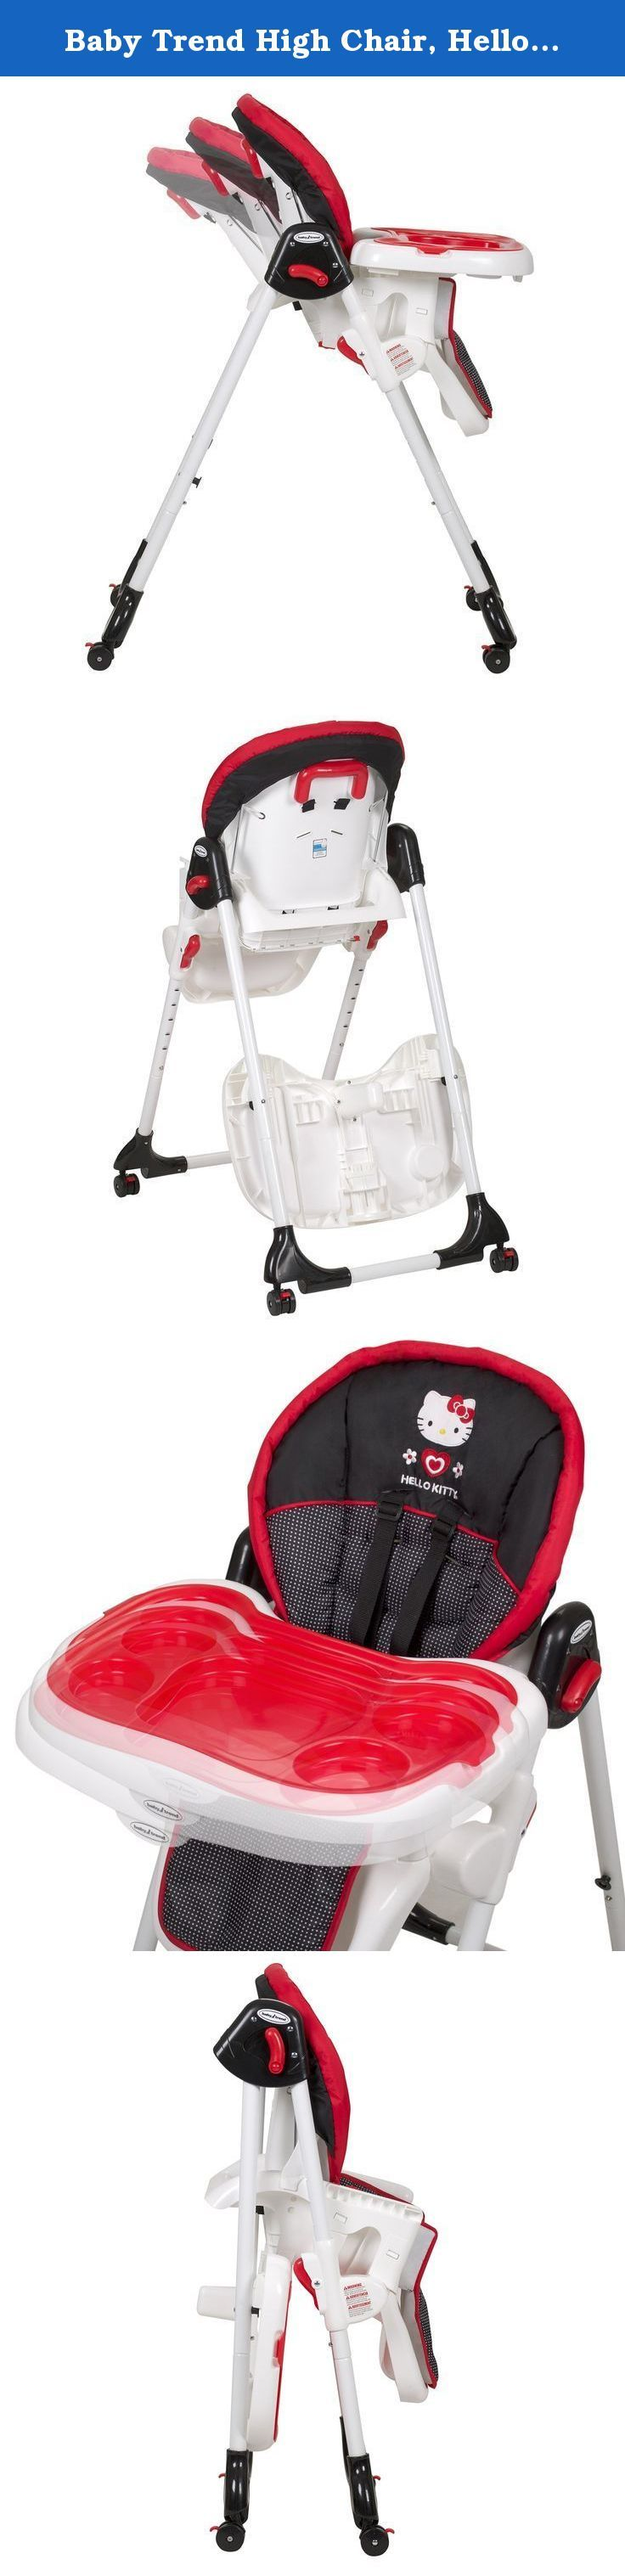 Baby Trend High Chair, Hello Kitty Classic Dot. The Baby Trend High Chair features a 3 position seat recline and a 6 position height adjustment. To keep your child secure during meal times, this high chair has a 5 point safety harness with harness covers for comfort. A dishwasher safe serving tray is also included that can be conveniently stored on the high chair when not in use. For stability, large caster wheels with brakes can be locked in place. The seat pad is easy wipe…